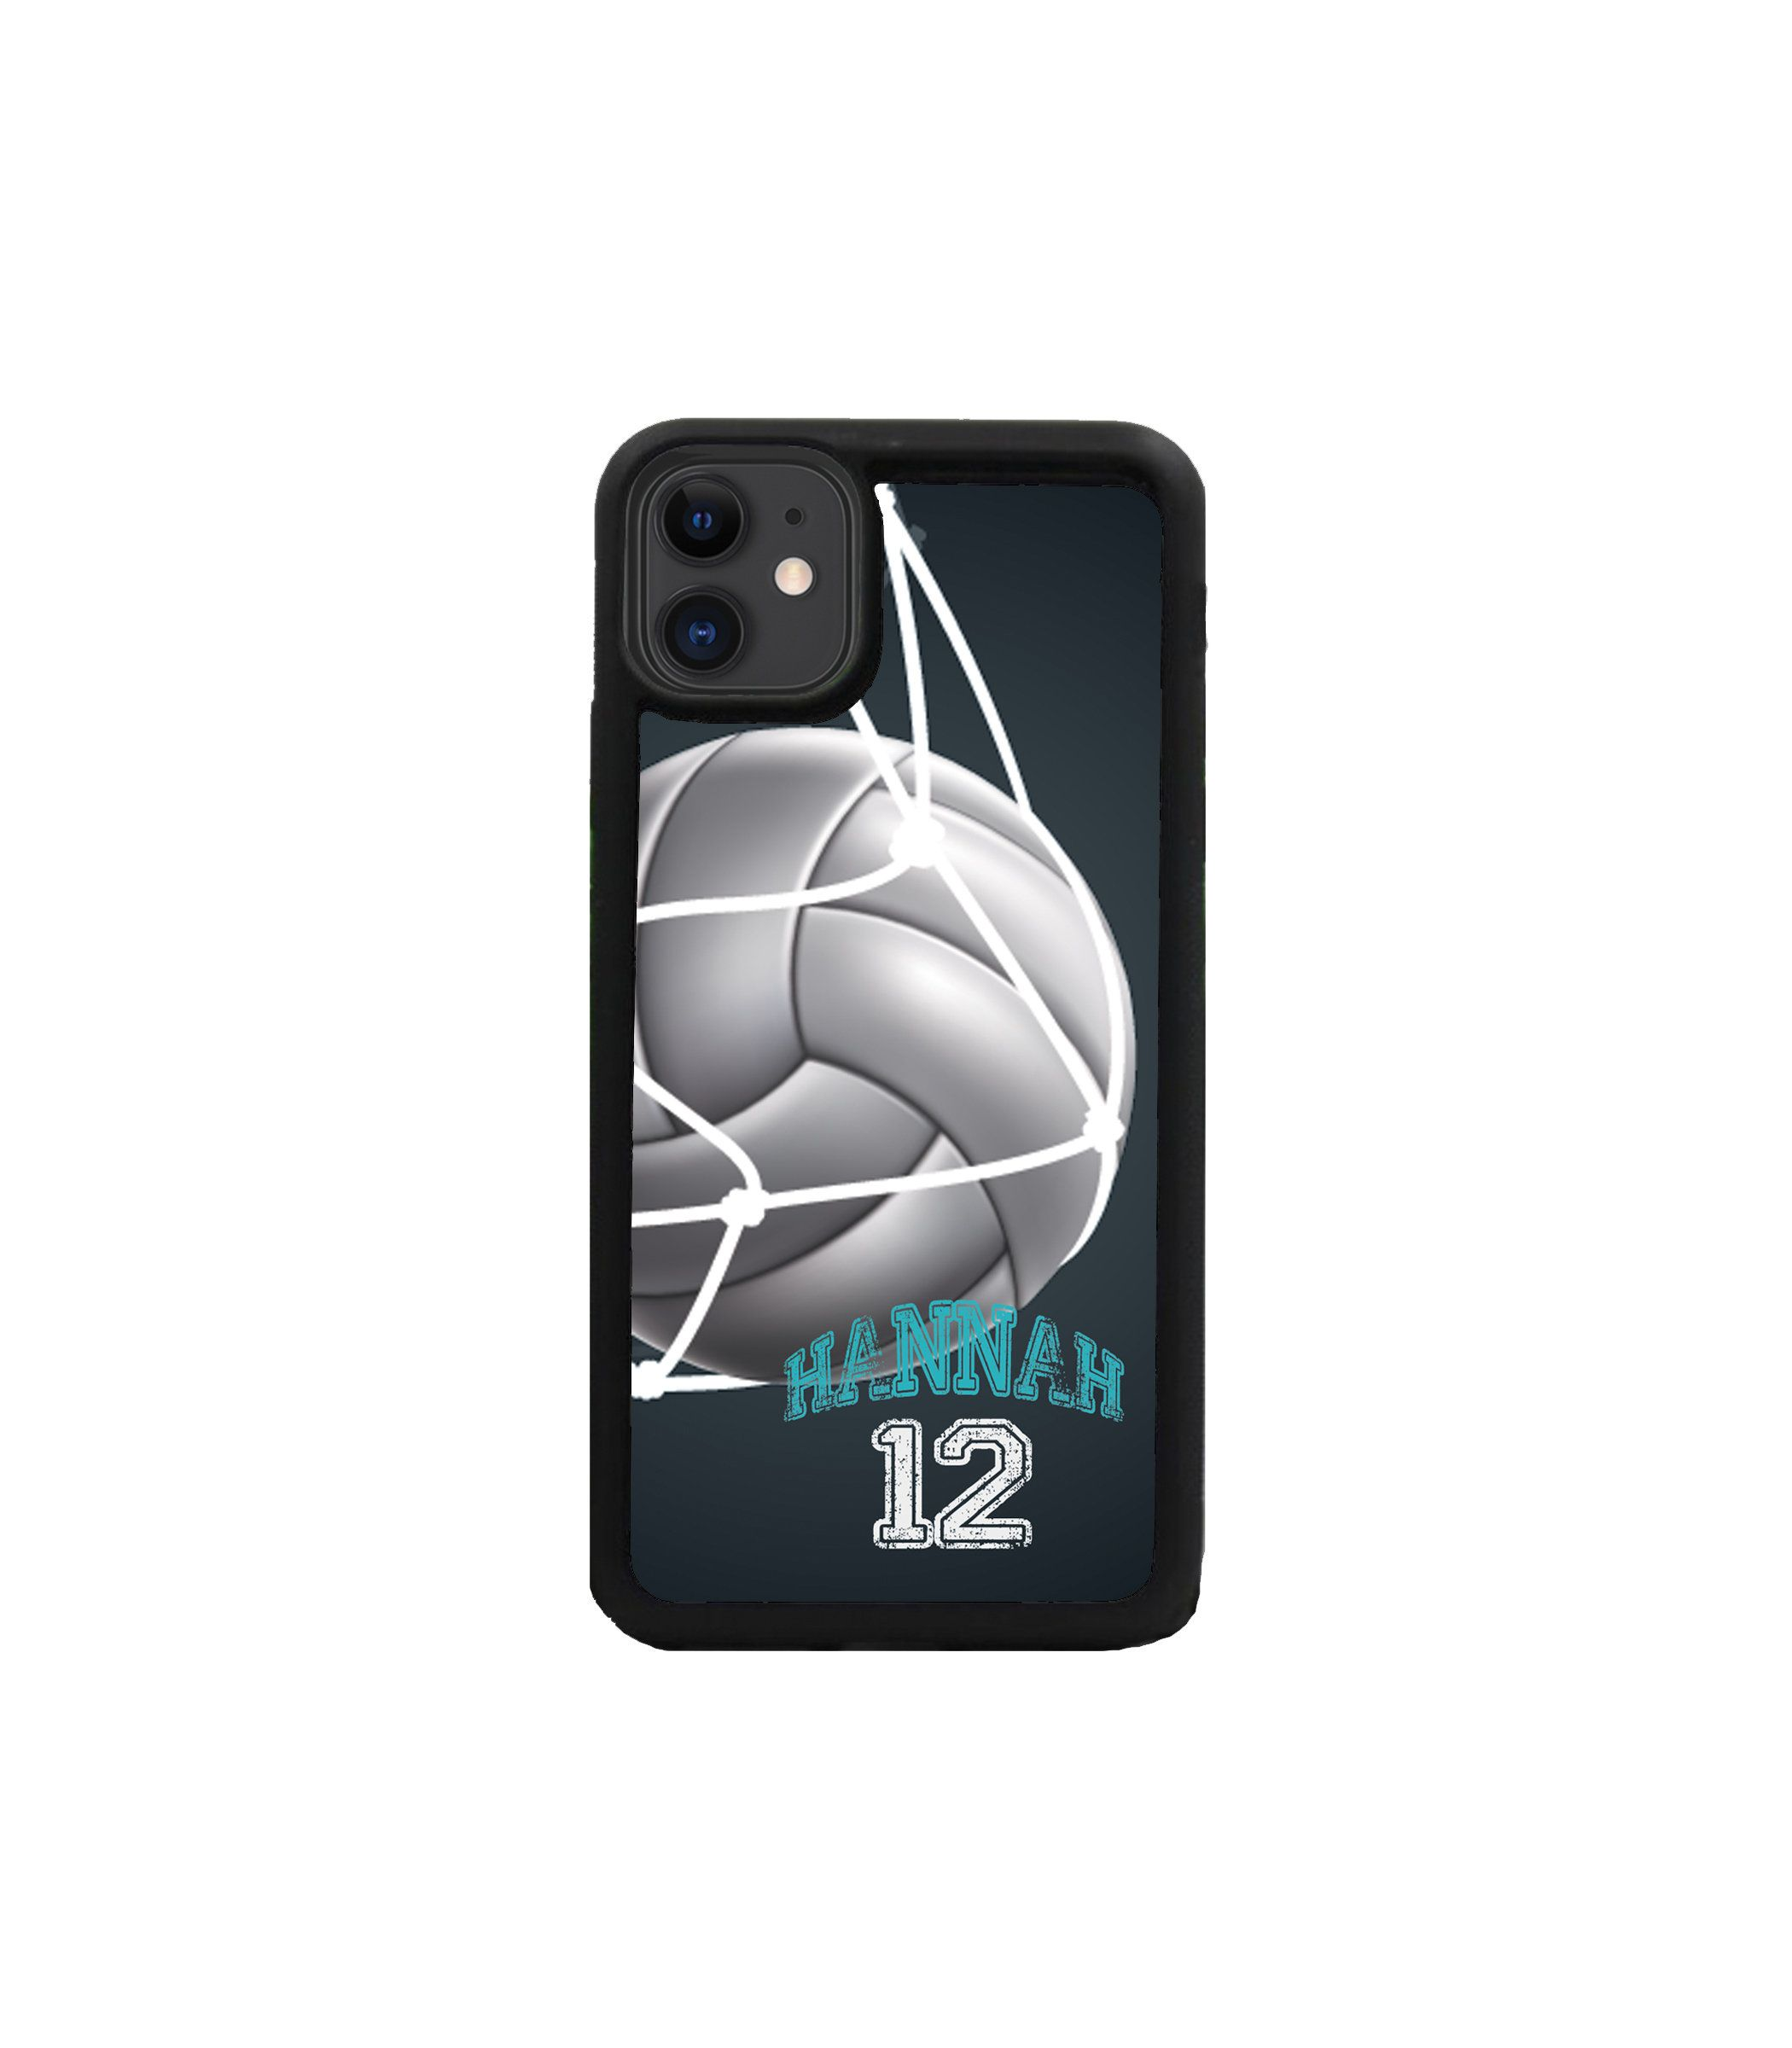 Custom Volleyball Case Personalized Volleyball Case Iphone Xsmax Case Iphone X Case Iphone Case Iphone 7 Case Iphone 11 Case Samsung Case In 2020 Samsung Galaxy Phone Covers Iphone Cases Volleyball Phone Cases